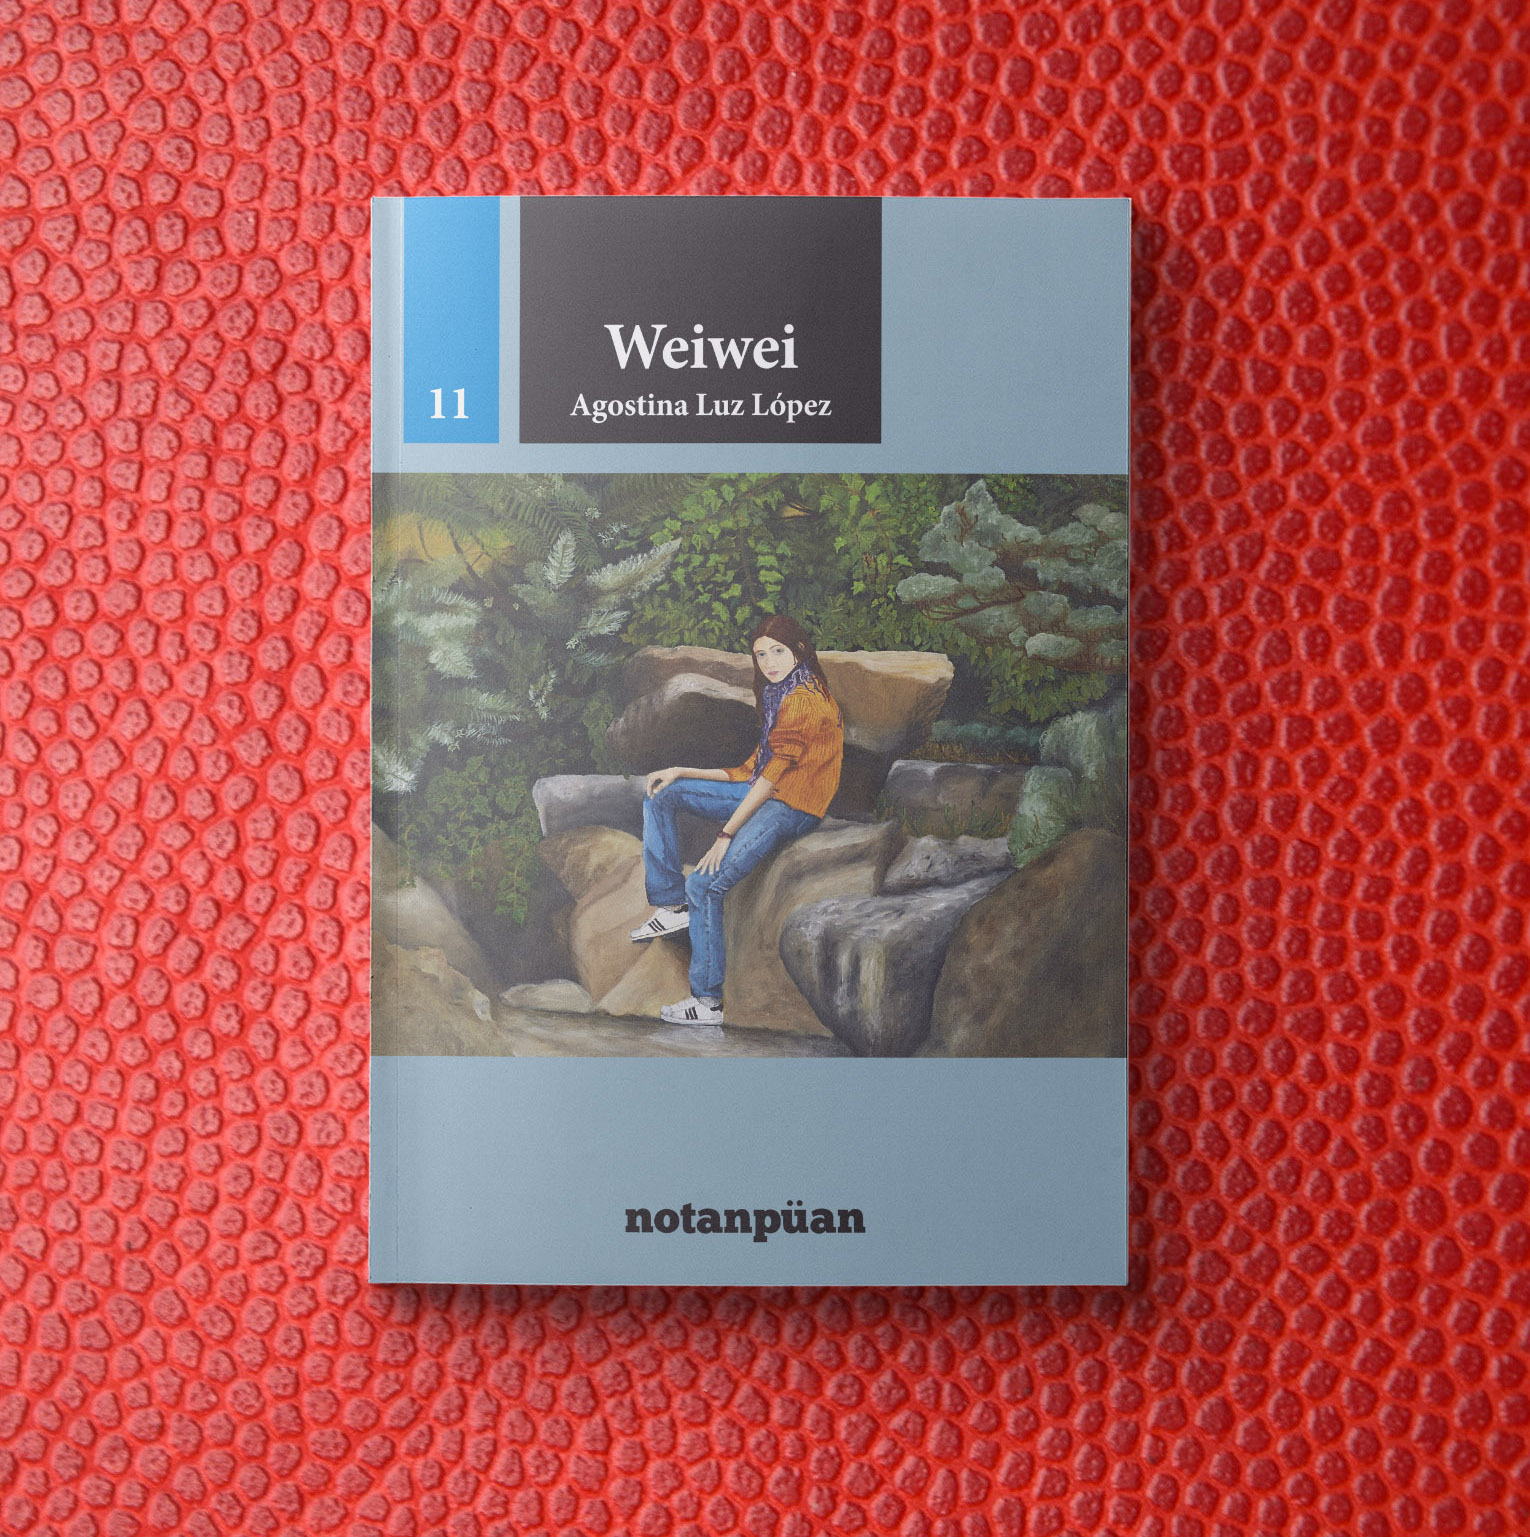 Title:  Weiwei   Author: Agostina Luz López  Year of publication: 2016  Pages: 123  Publisher: Notanpuan (Argentina)  World English rights available.